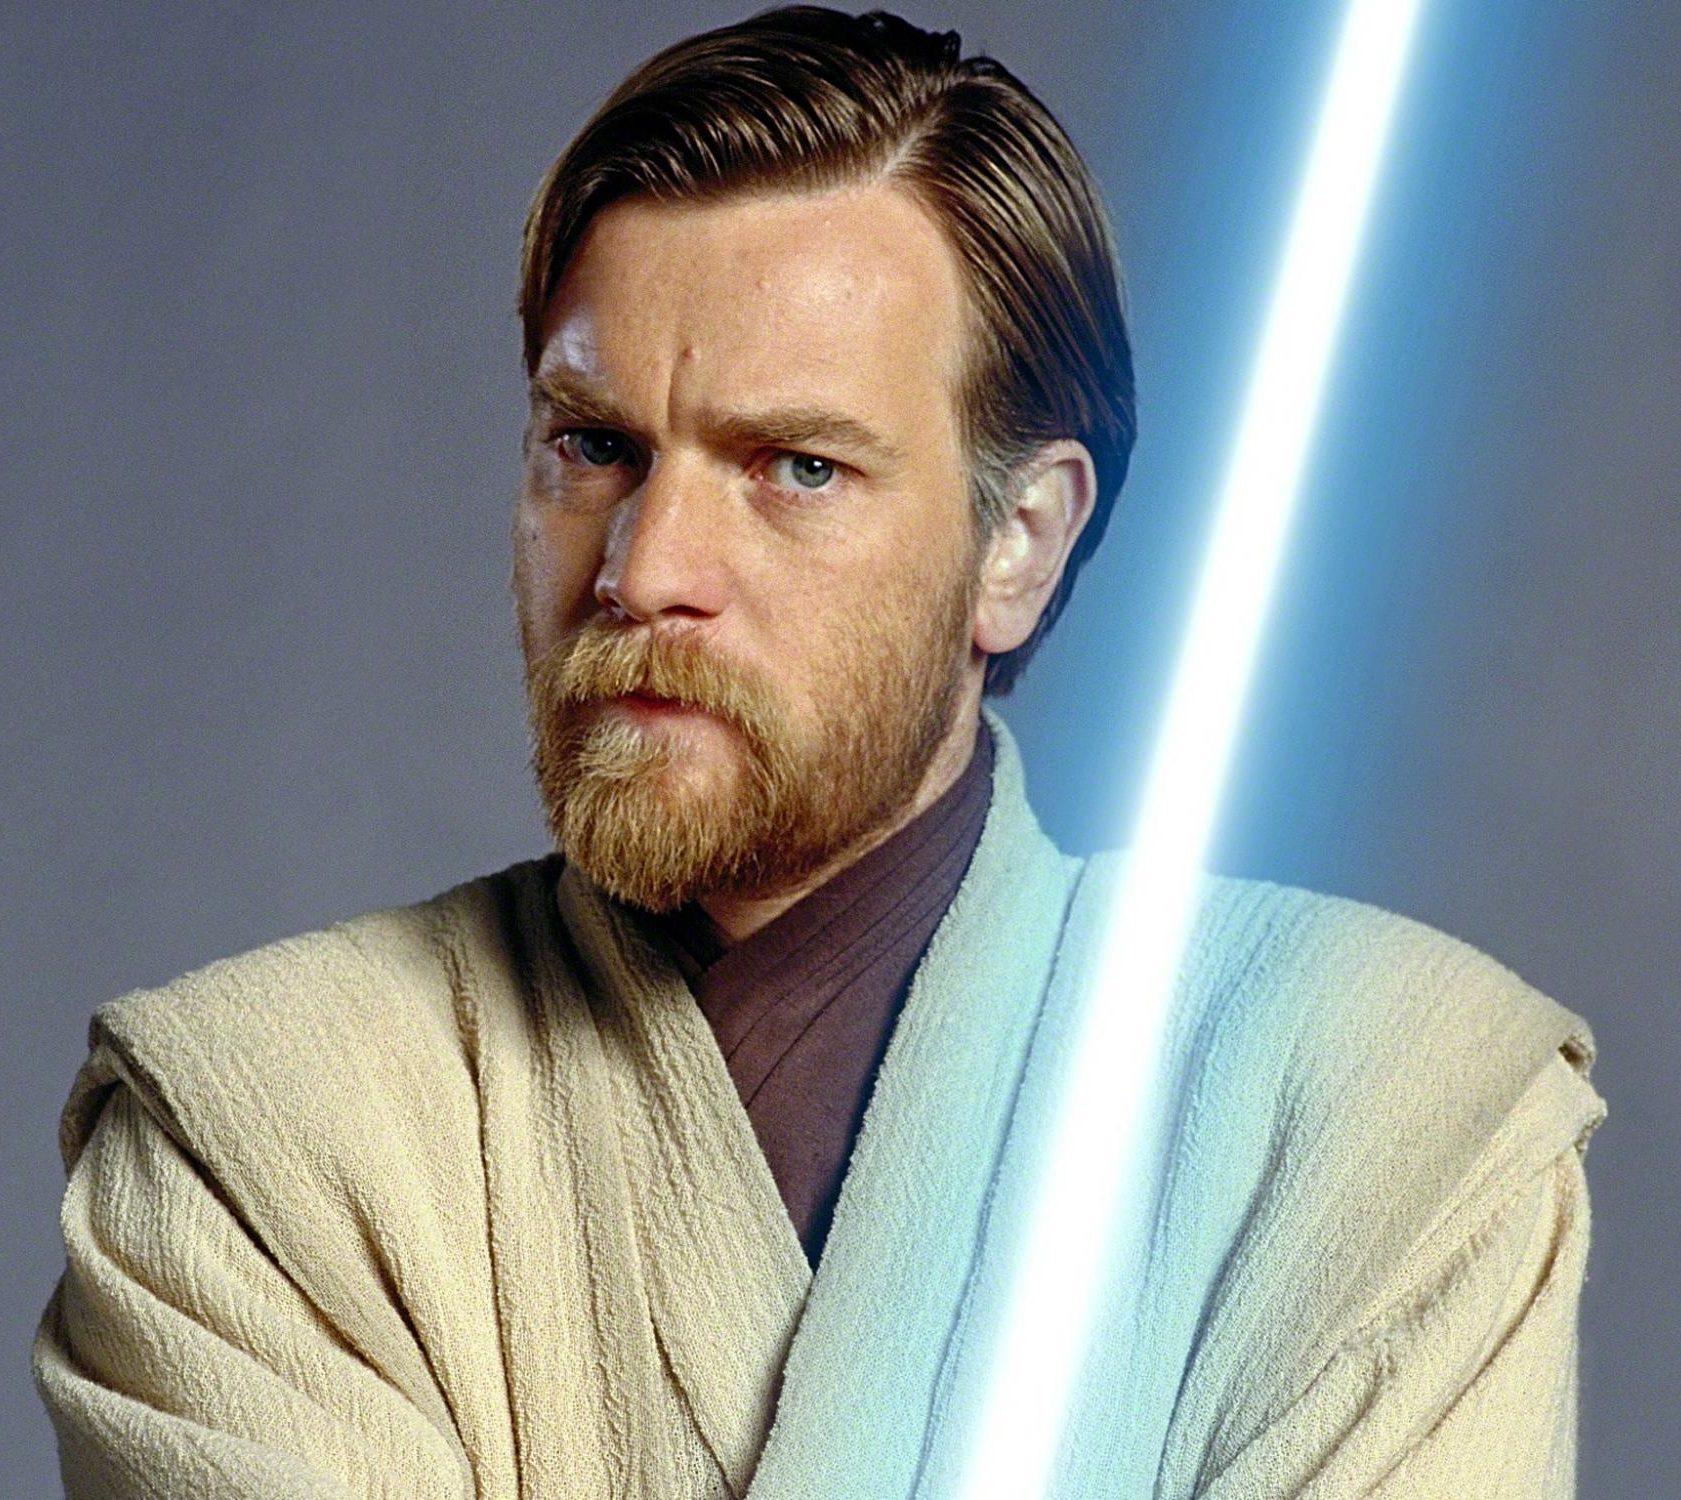 1 57 e1610108001907 20 Things You Probably Didn't Know About Ewan McGregor